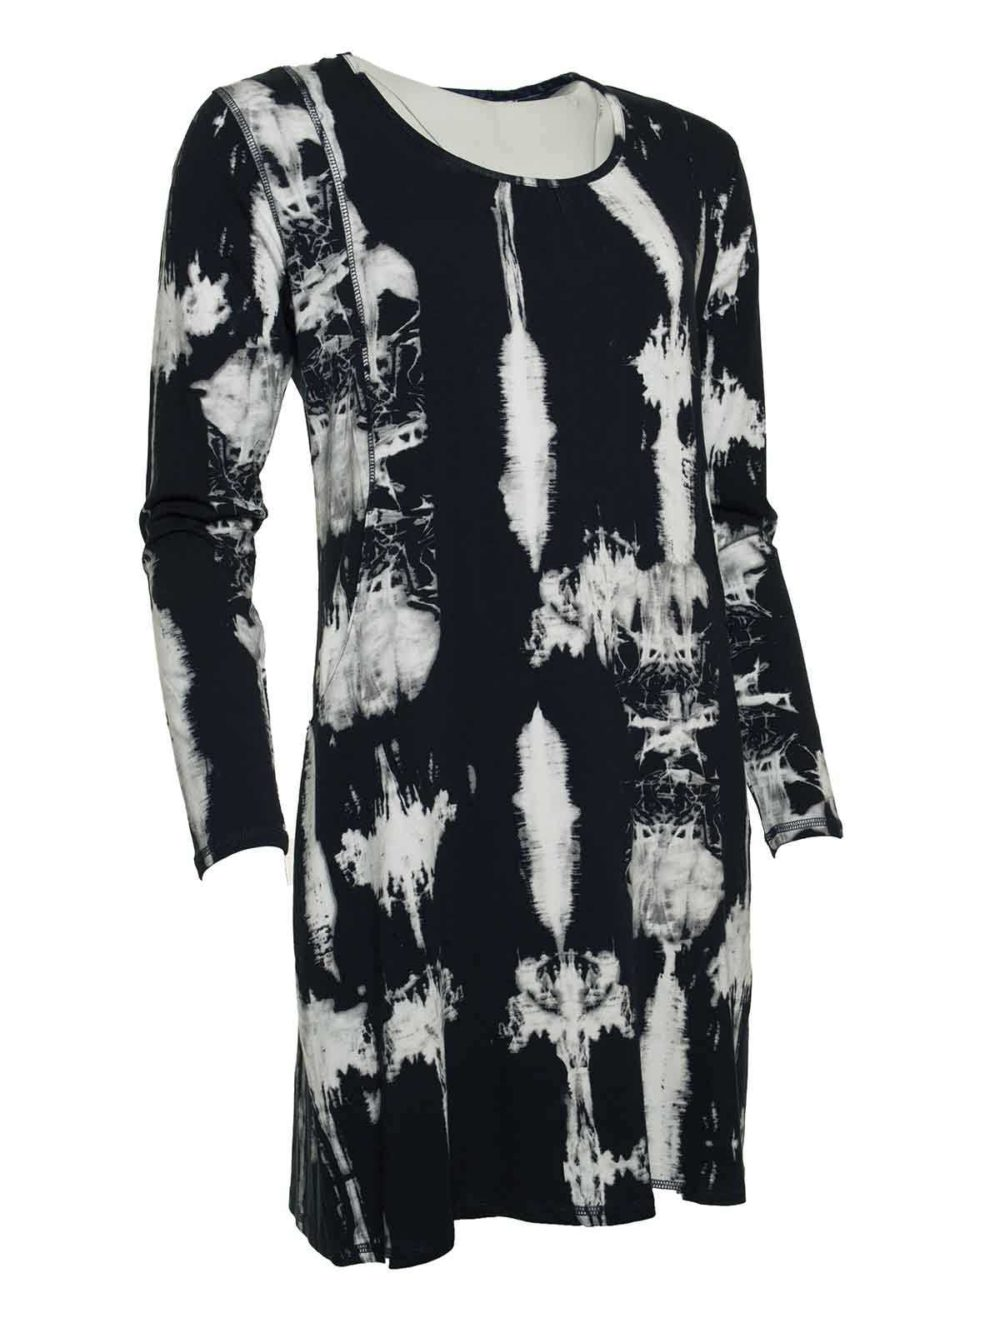 Elsenore Dress Thought Clothing Katie Kerr Women's Clothing